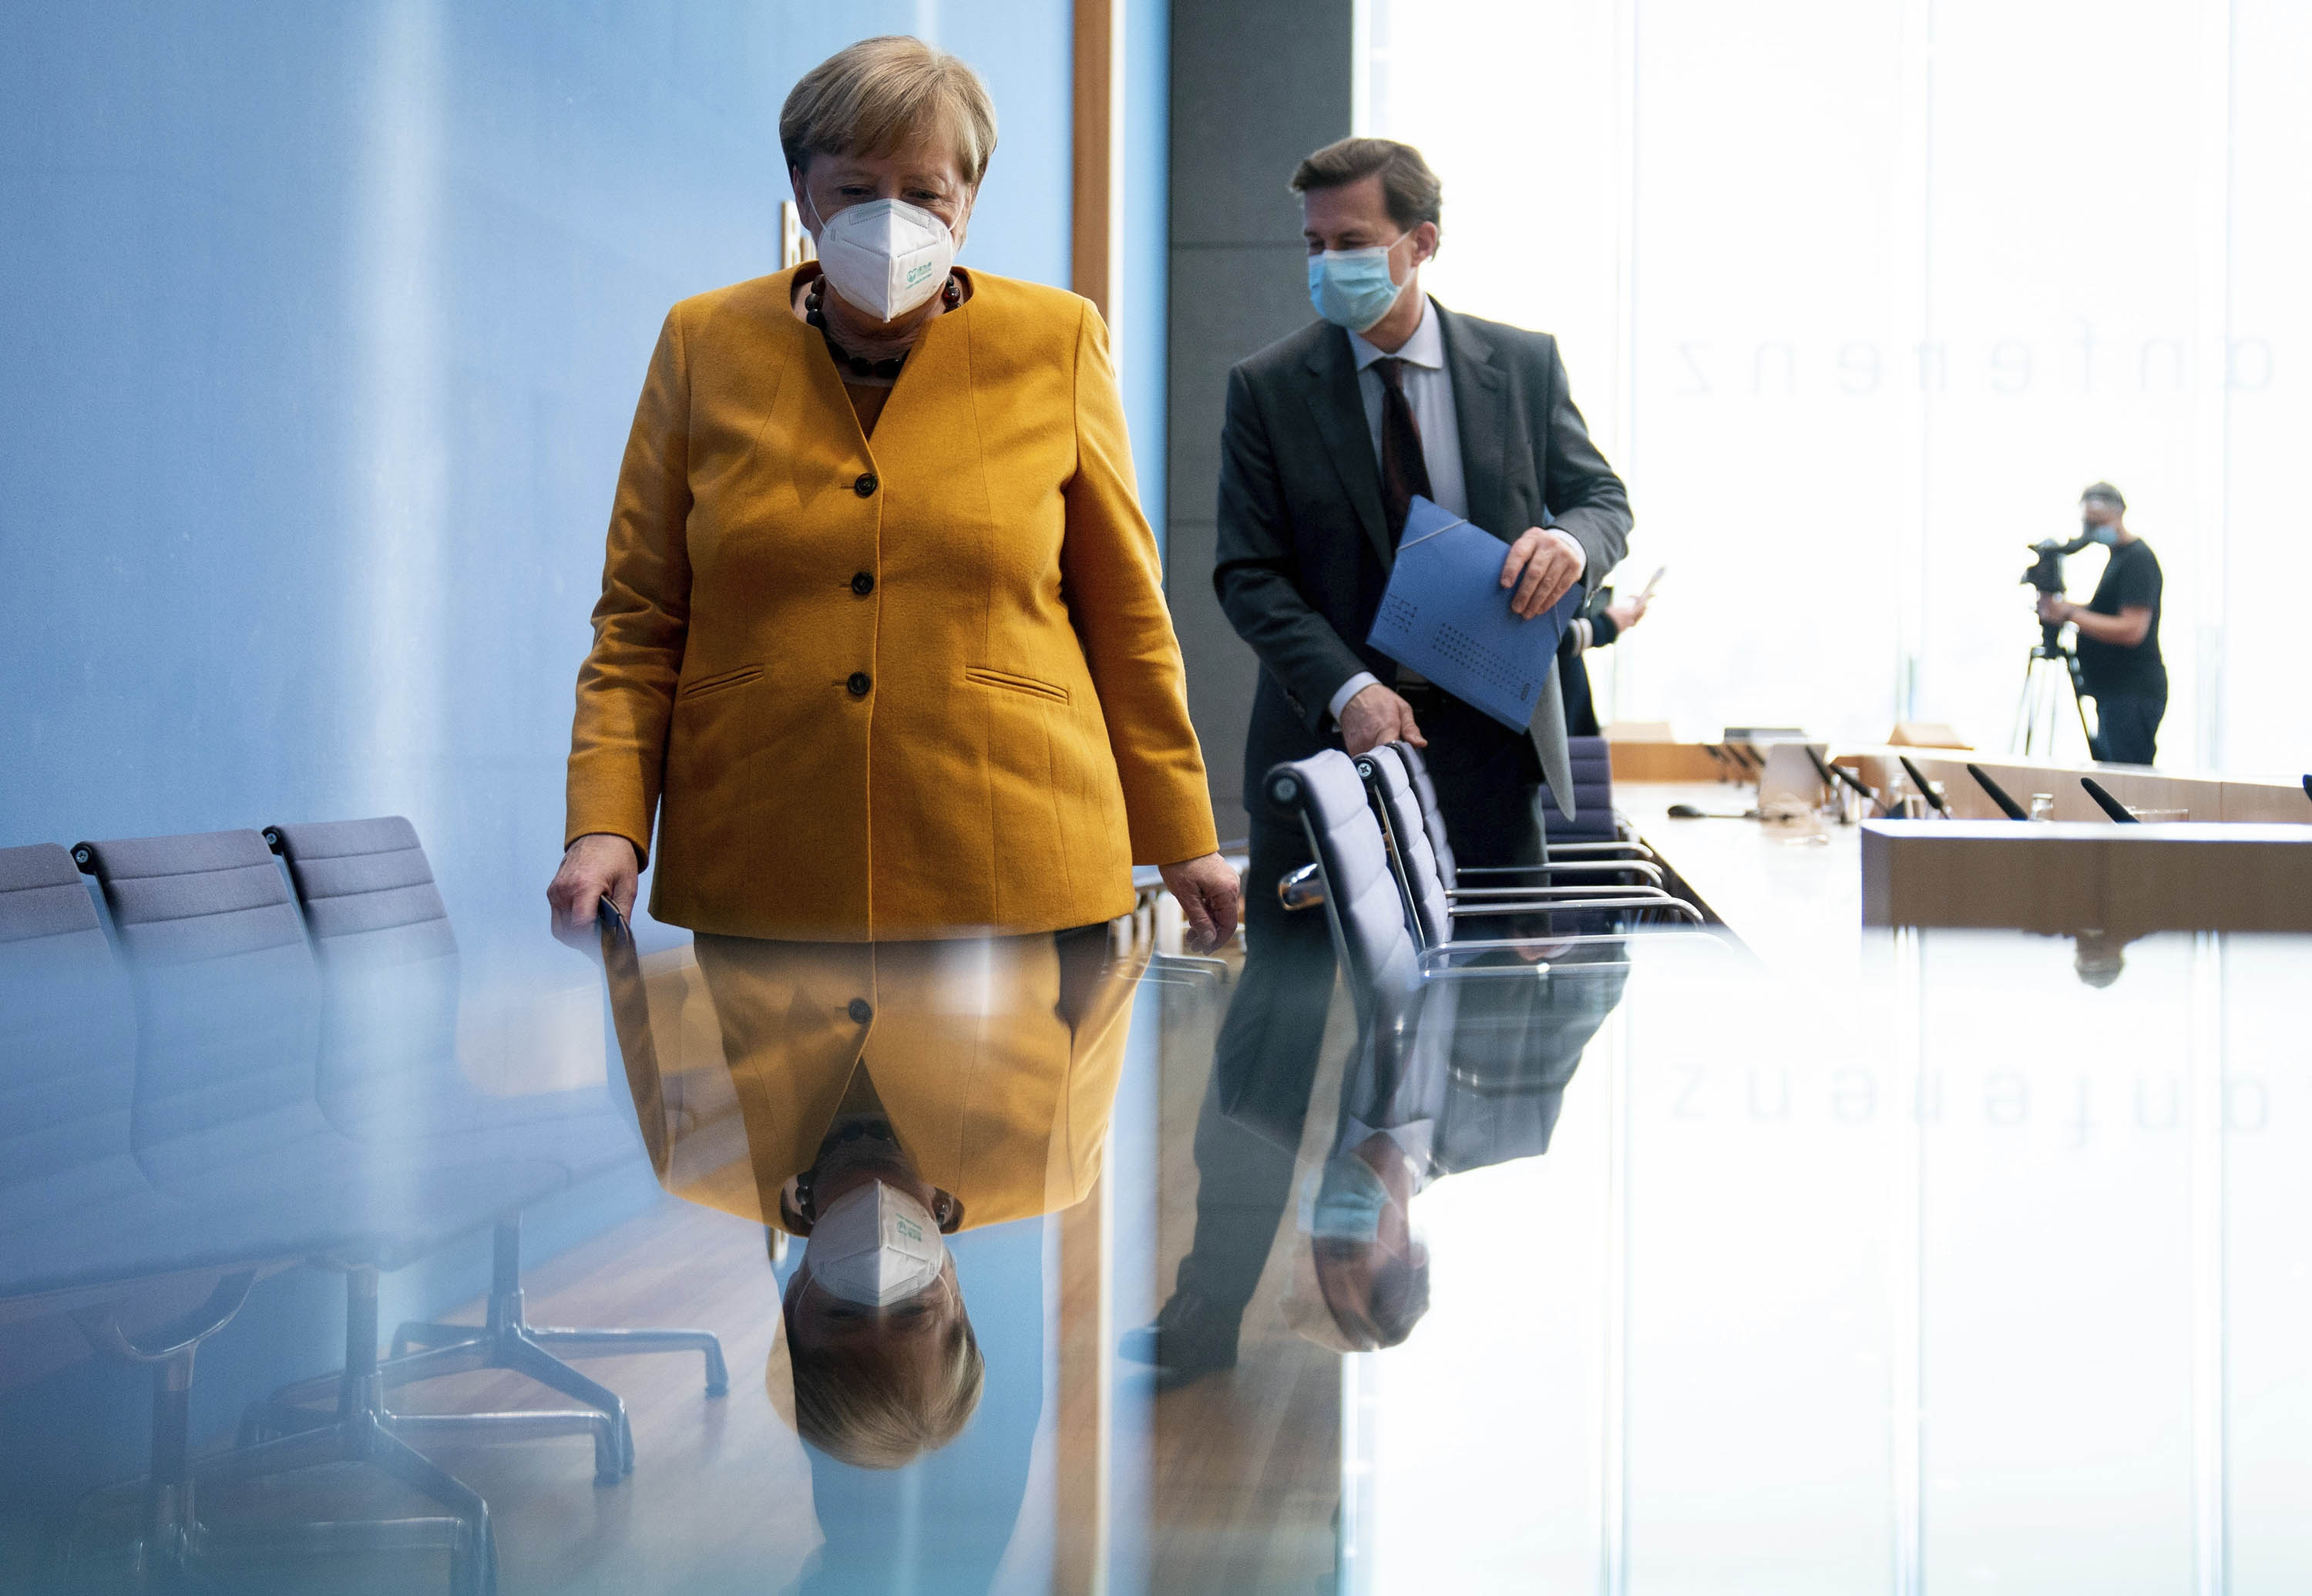 German Chancellor Angela Merkel leaves with spokesmen Steffen Seibert after a news conference in Berlin, on November 2.